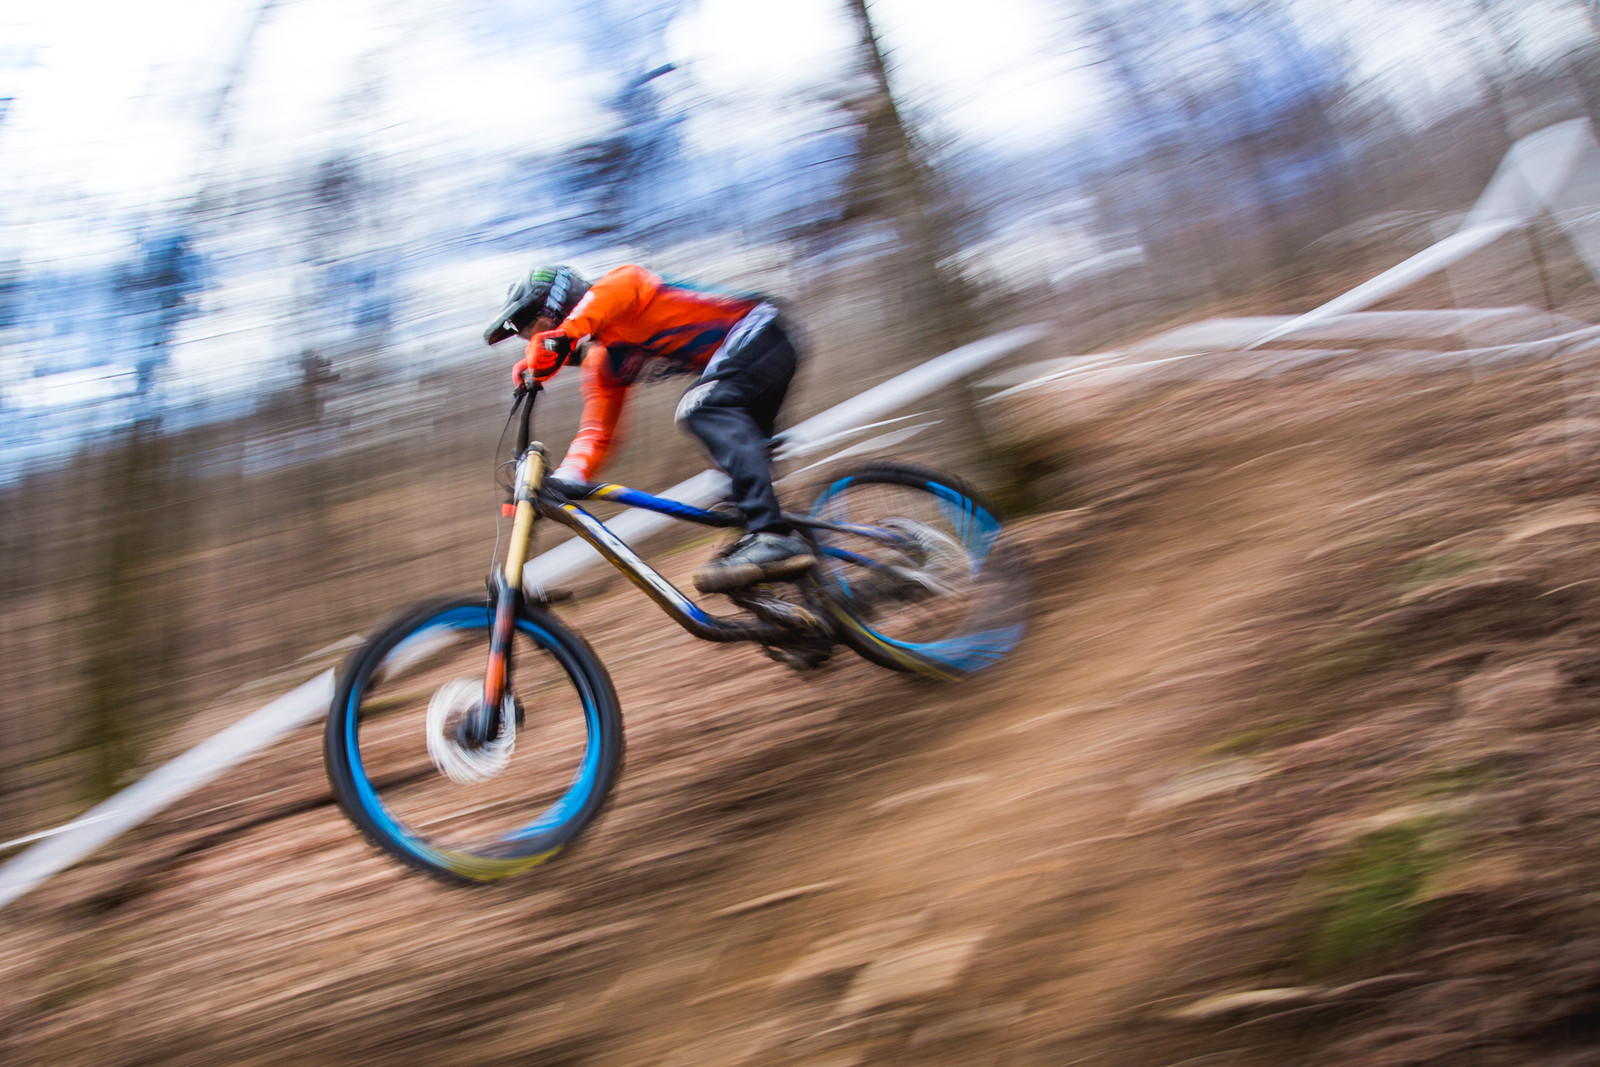 44 Greasy Photos from Windrock Pro GRT Friday - Greasy Goodness from the Pro GRT Windrock - Mountain Biking Pictures - Vital MTB